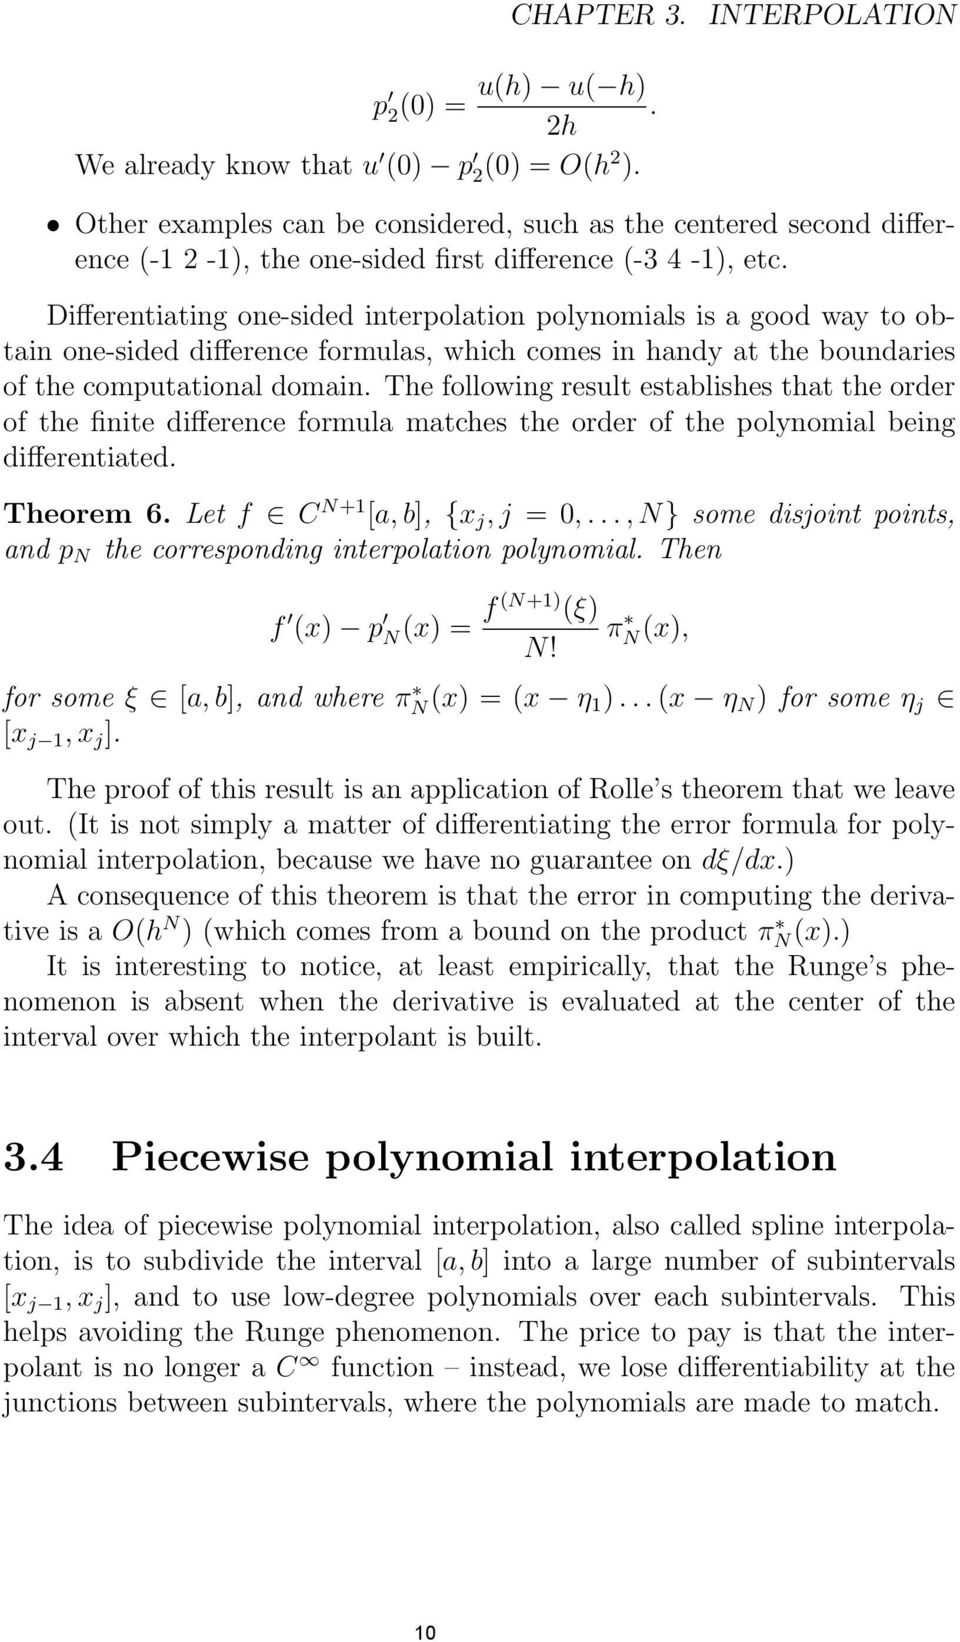 Differentiating one-sided interpolation polynomials is a good way to obtain one-sided difference formulas, wic comes in andy at te boundaries of te computational domain.